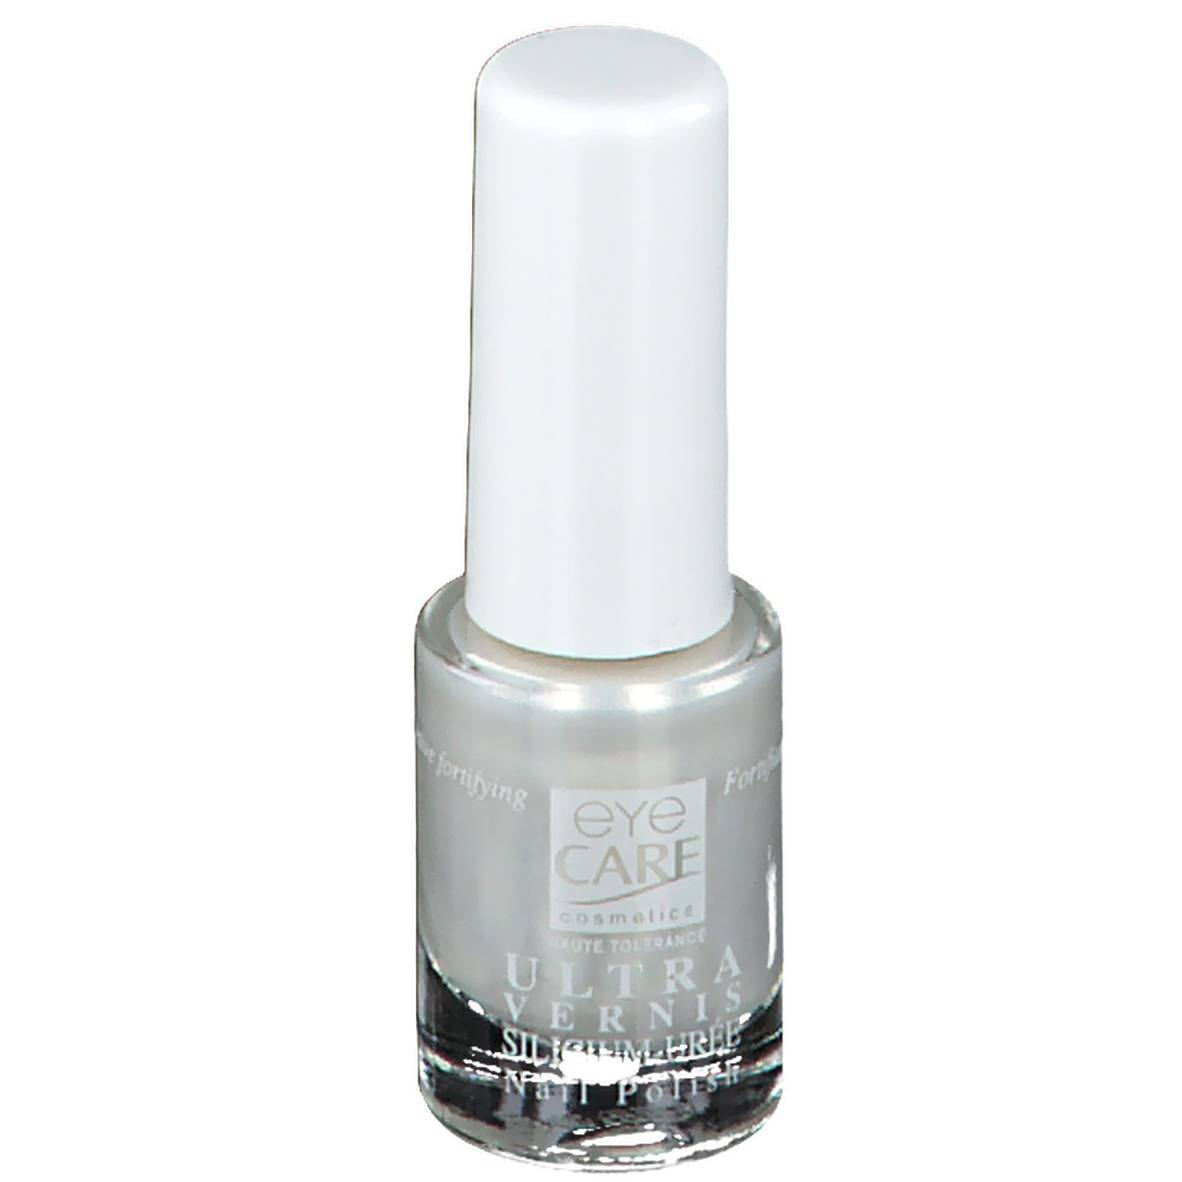 Eye care cosmetics eyeCARE Ultra vernis silicium-urée Nacre ml vernis à ongles